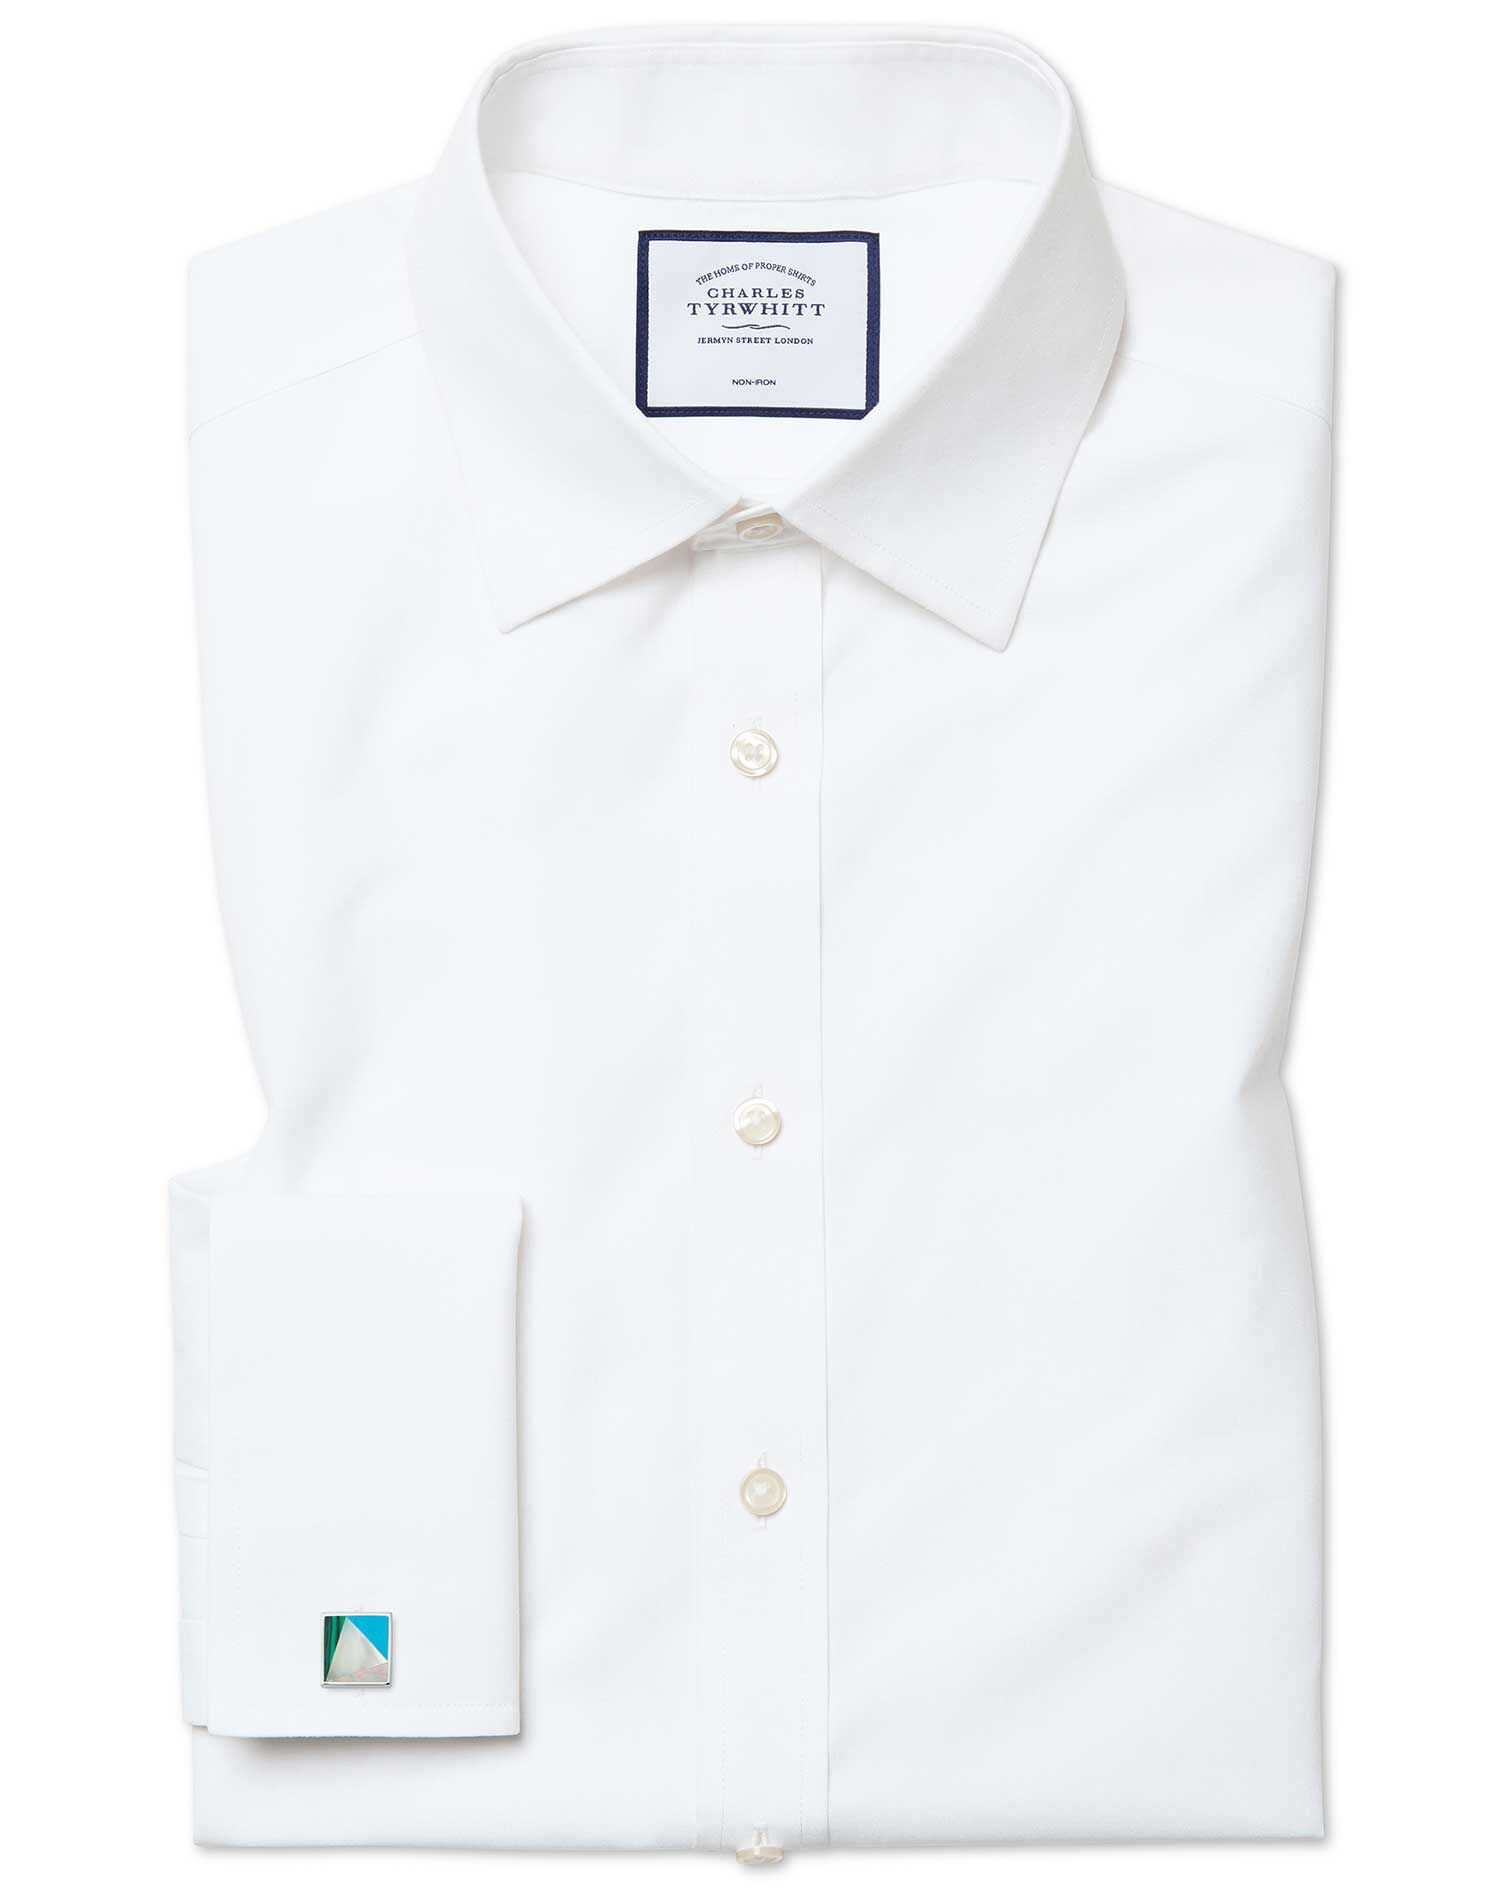 Classic Fit Non-Iron Poplin White Cotton Formal Shirt Single Cuff Size 19/37 by Charles Tyrwhitt